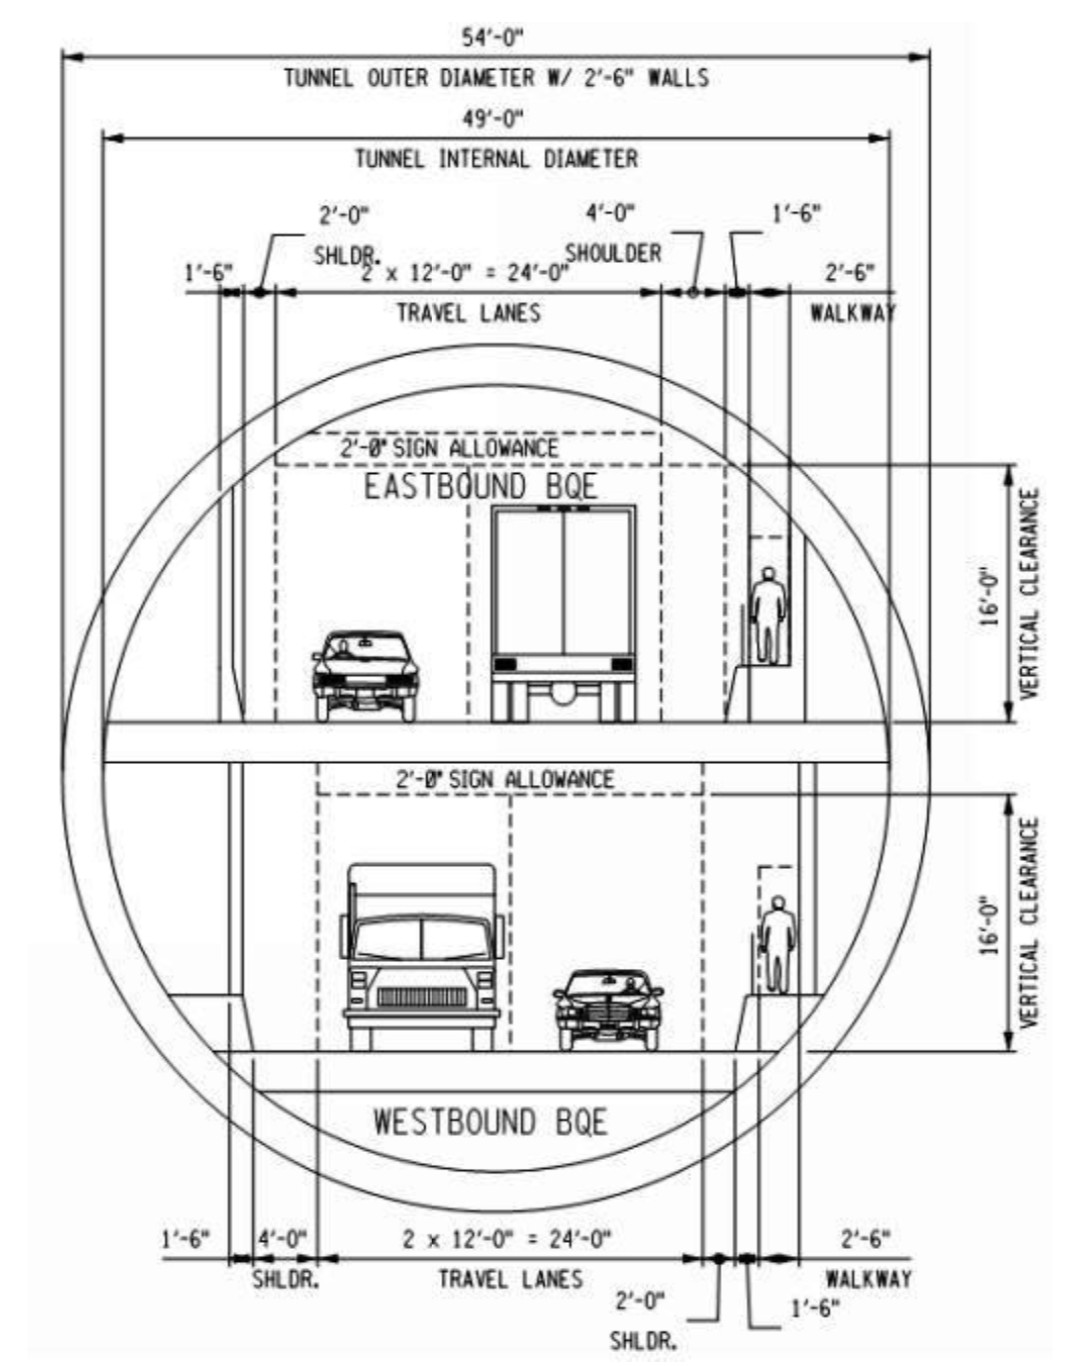 A black and white diagram of a tunnel with two tiers of traffic with two lanes each. There is also an emergency exit on the right side of each tier.